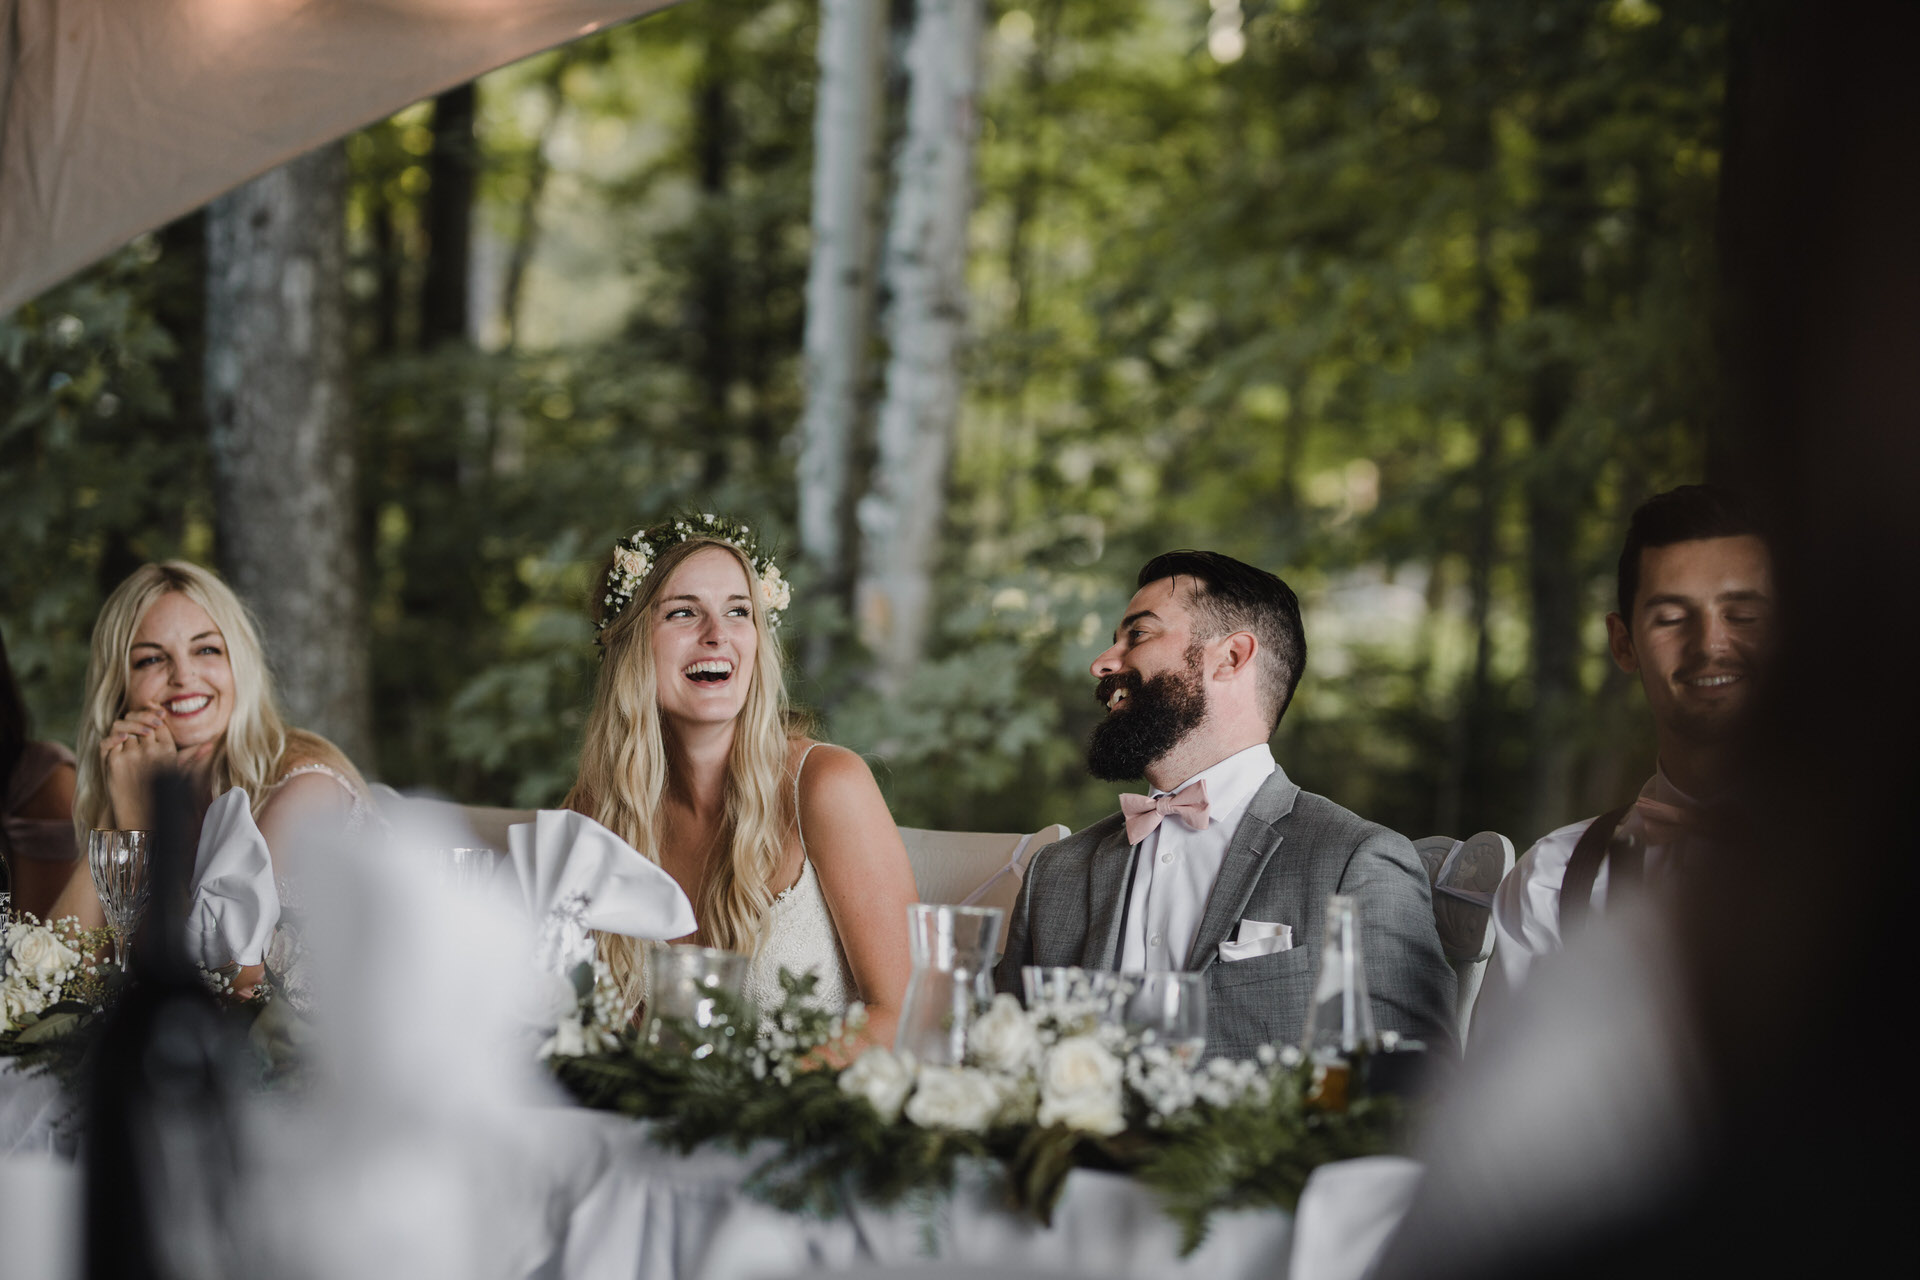 Muskoka Wedding - laughs during speeches